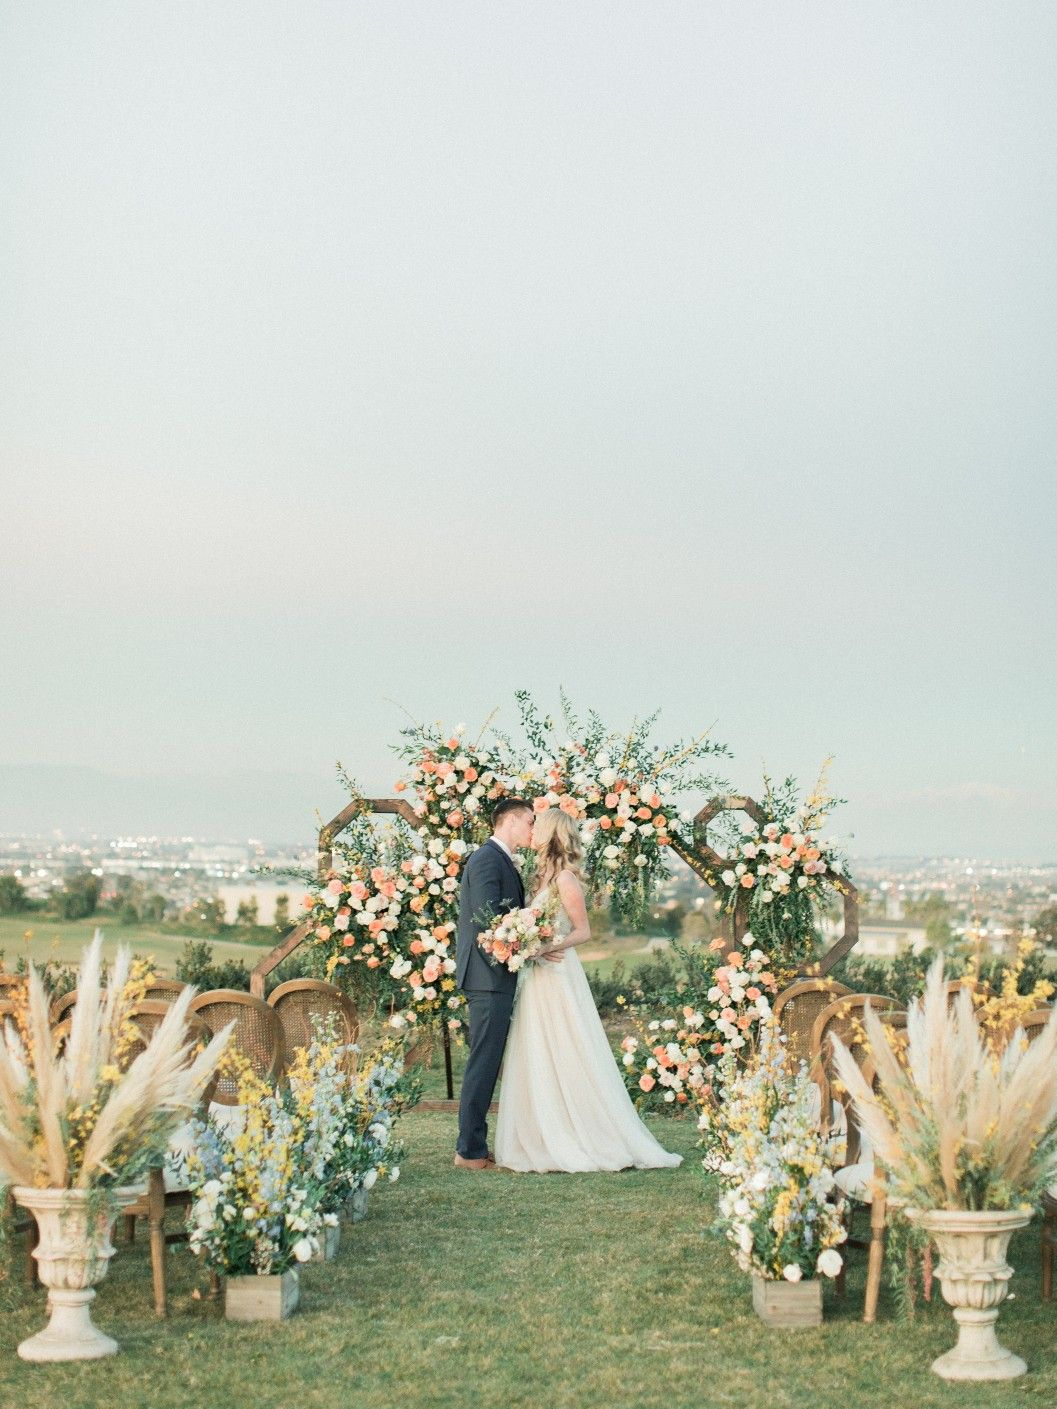 Wedding Inspiration At Rolling Hills Country Club In Palos Verdes Ca With Colorful Floral Design Wedding Event Planning Los Angeles San Diego Wedding Planning